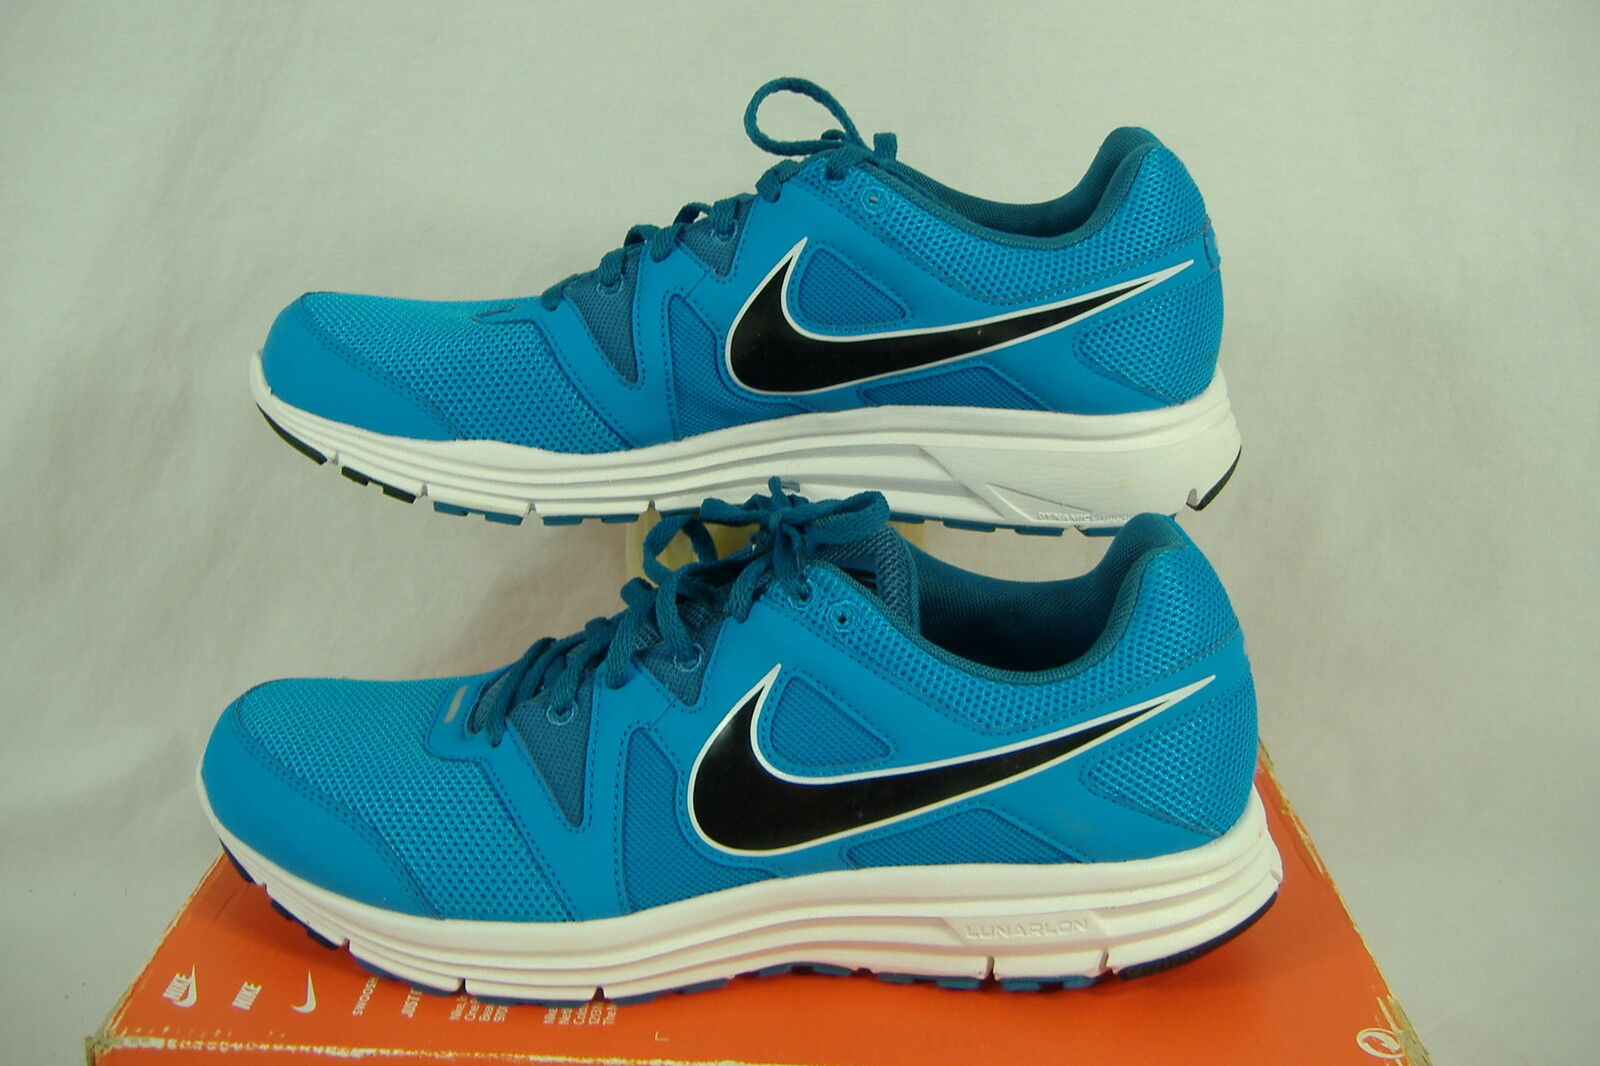 New Womens Womens Womens 11.5 NIKE  LunarFly 3  bluee White Dynamic Support Run shoes  85 7a174d